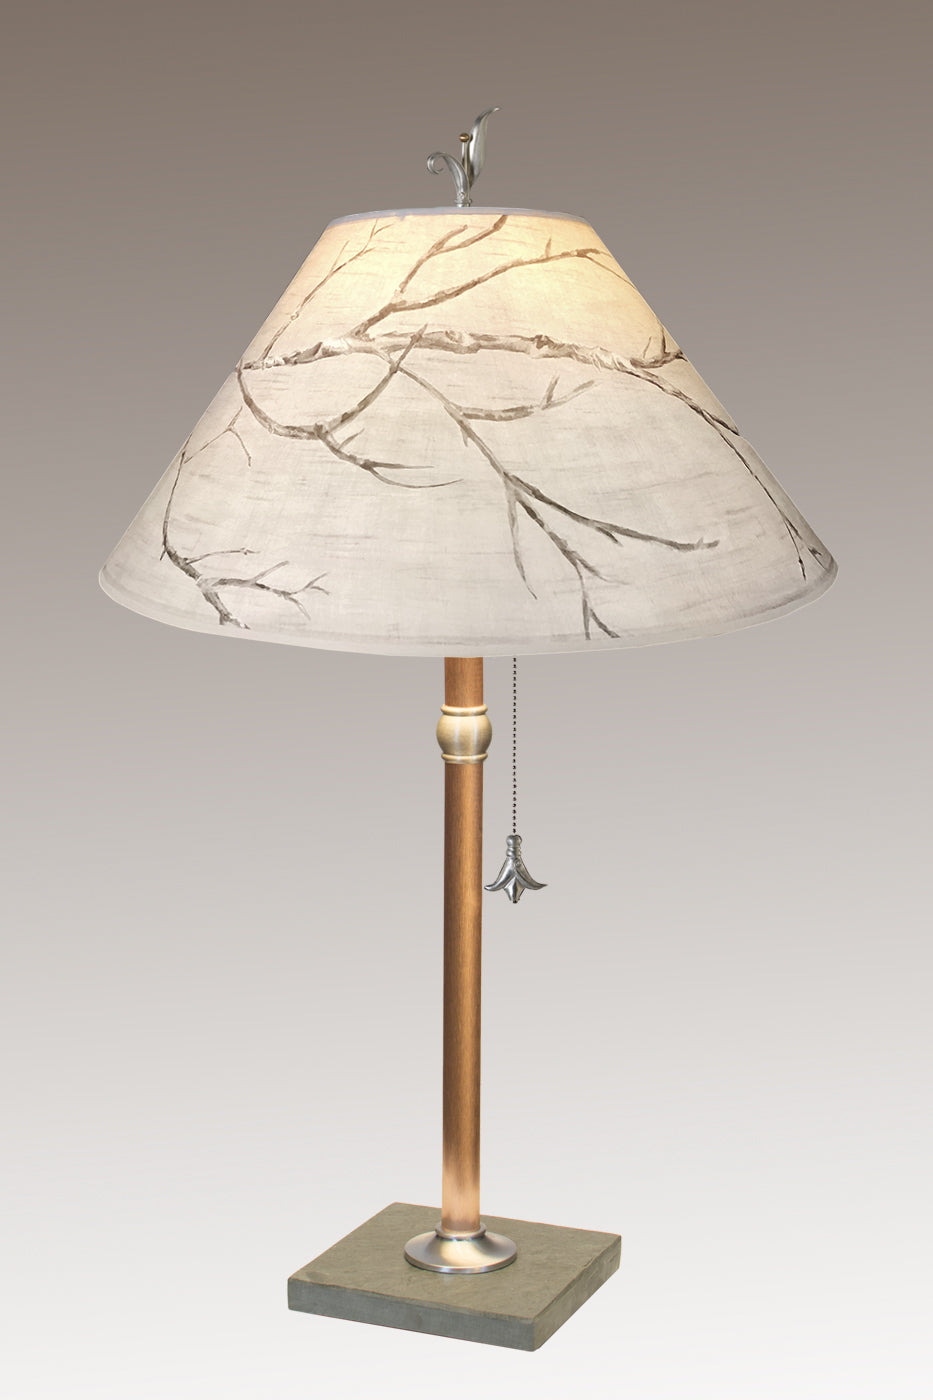 Copper Table Lamp on Vermont Slate with Large Conical Shade in Sweeping Branch